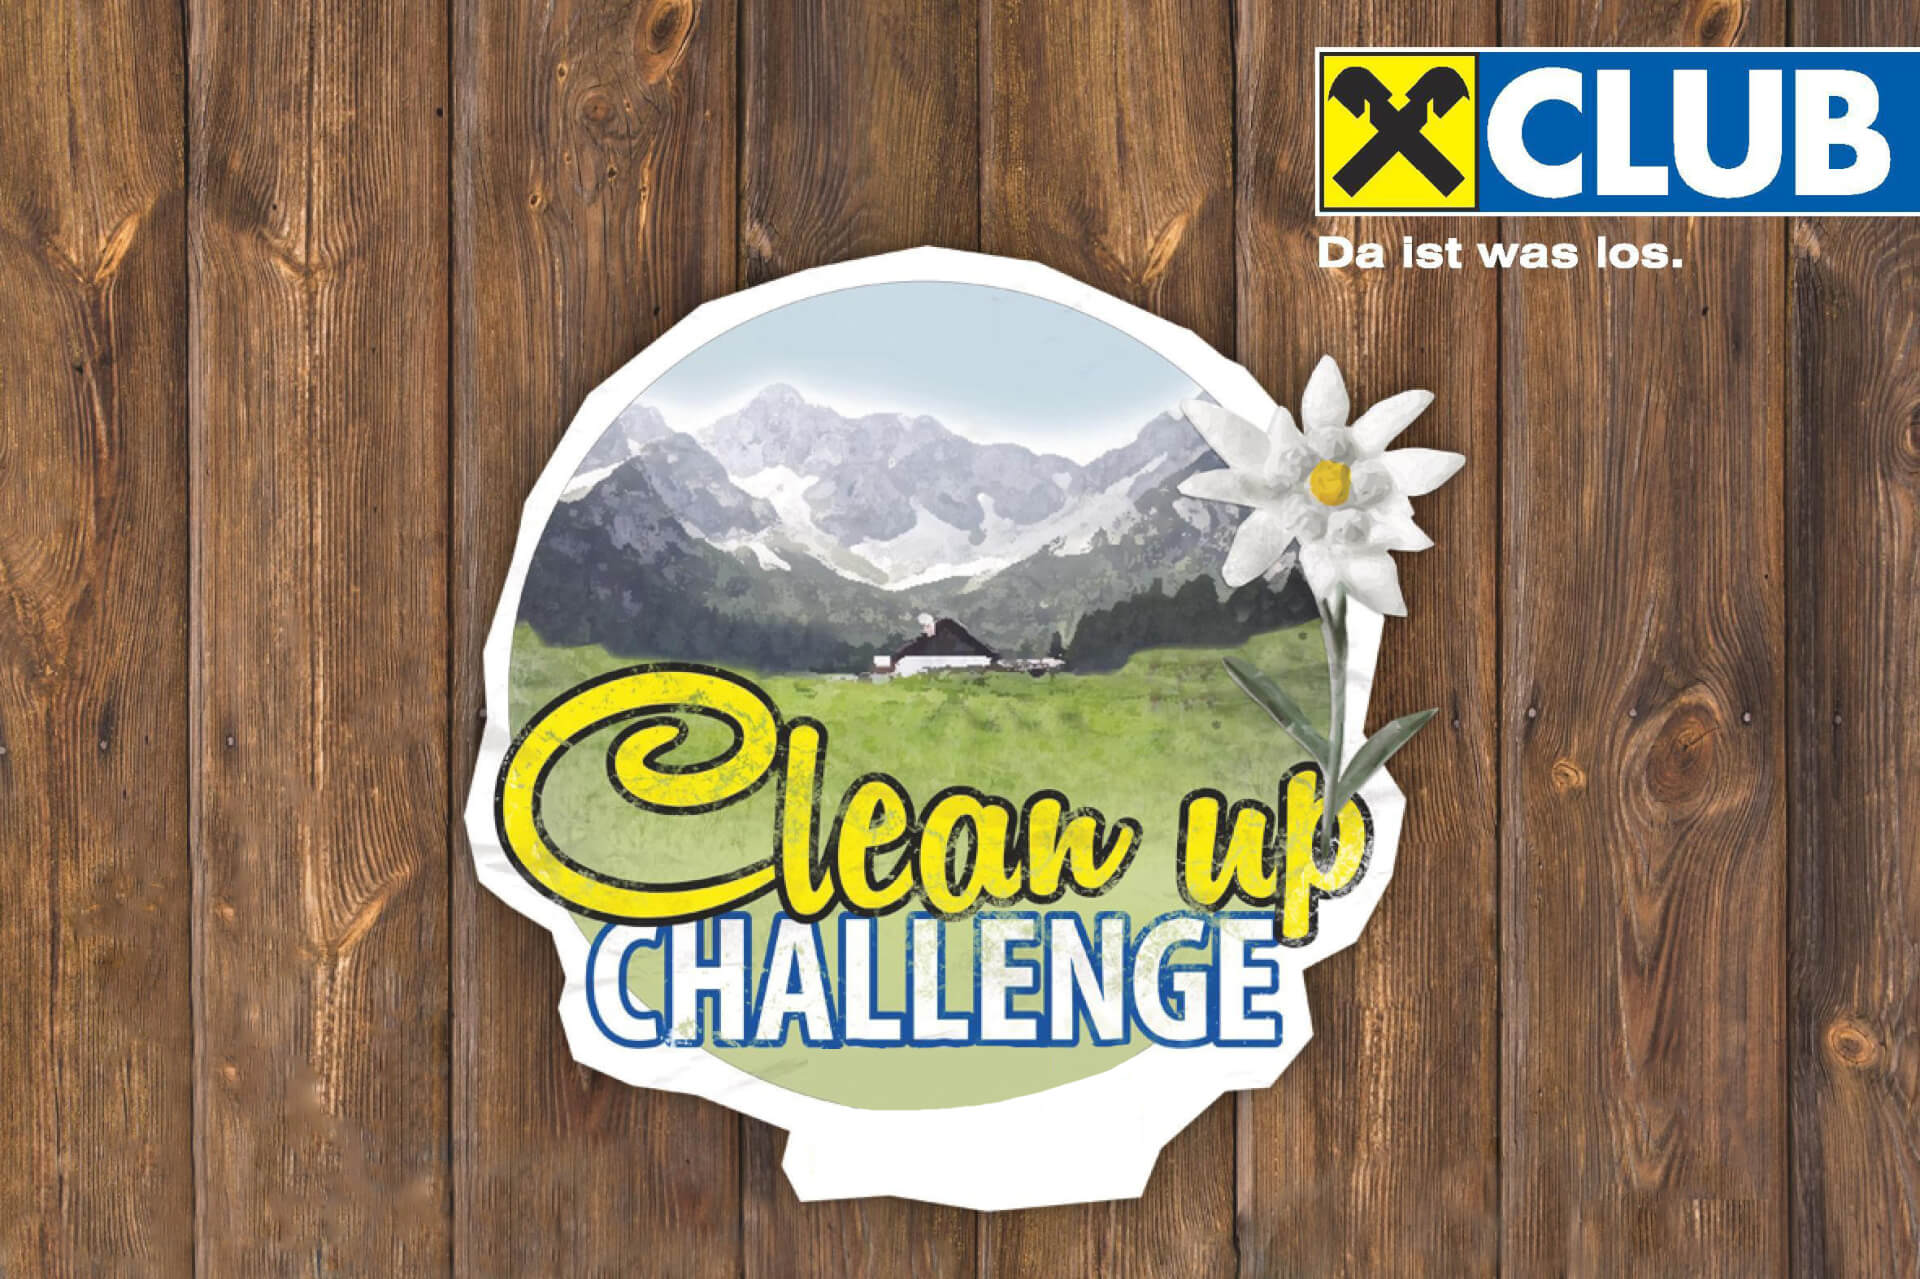 Logo der Clean up Challenge